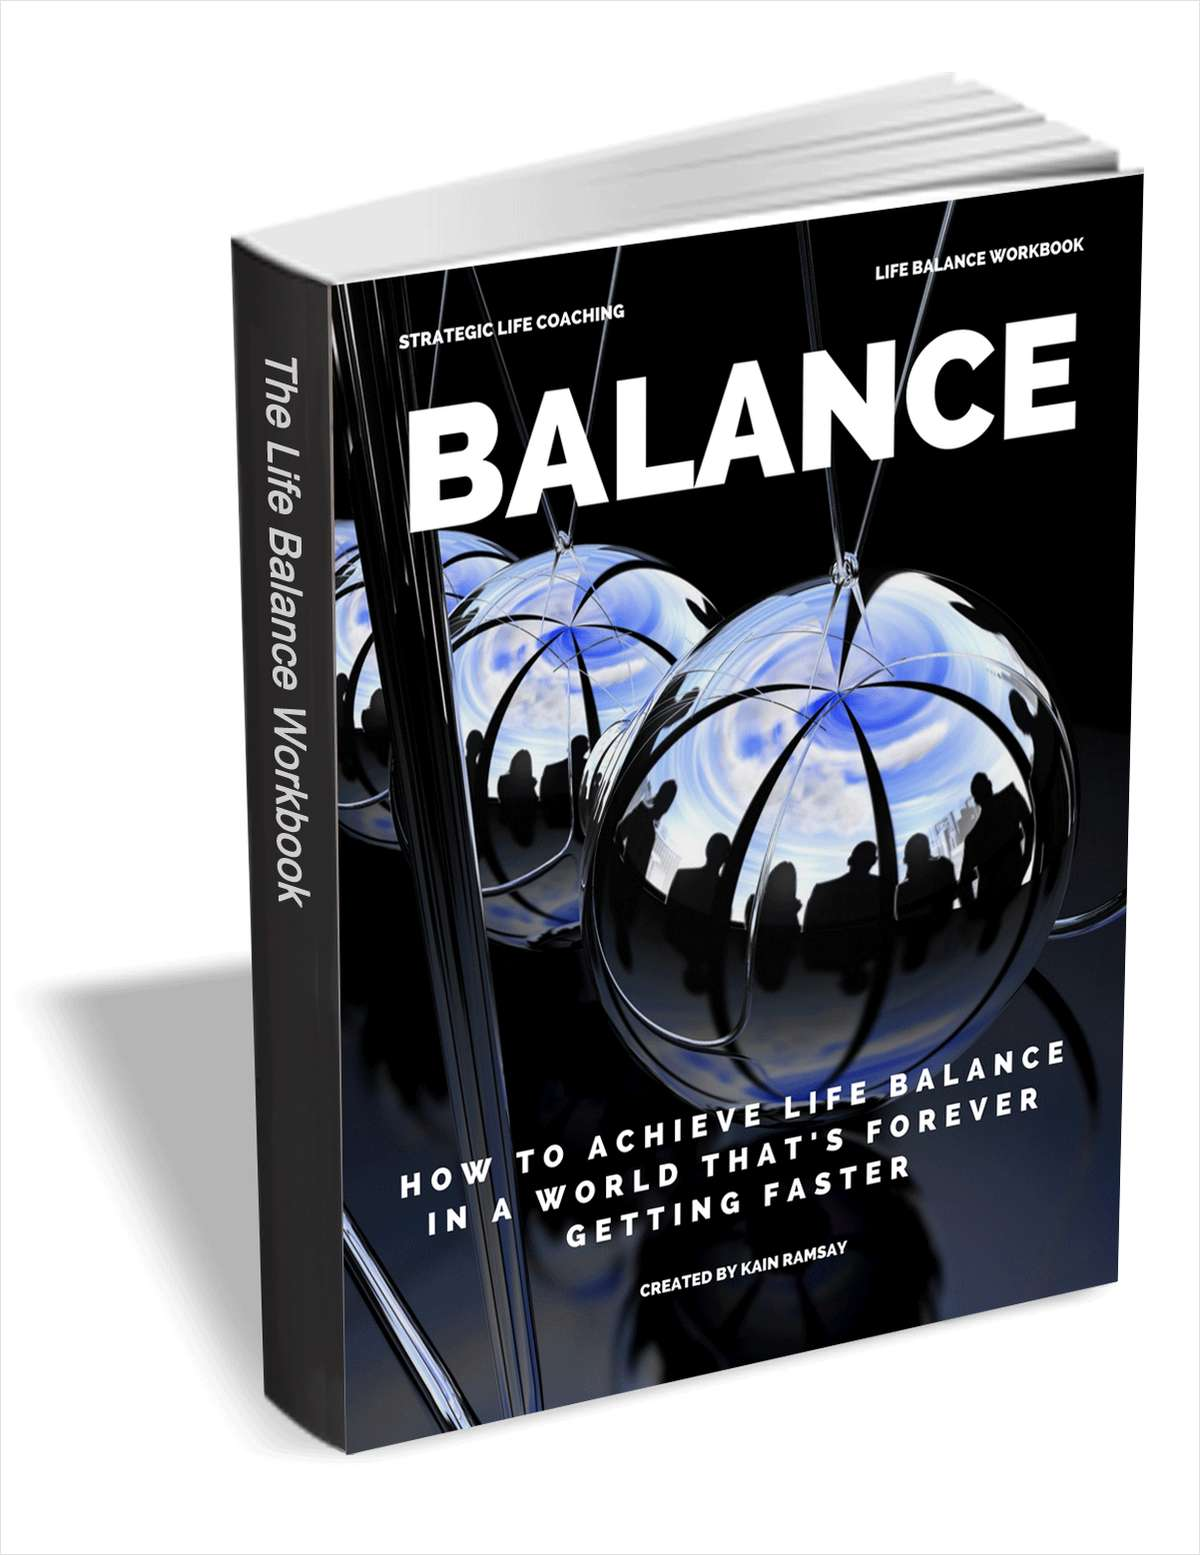 Balance - How to Achieve Life Balance in a World that's Forever Getting Faster